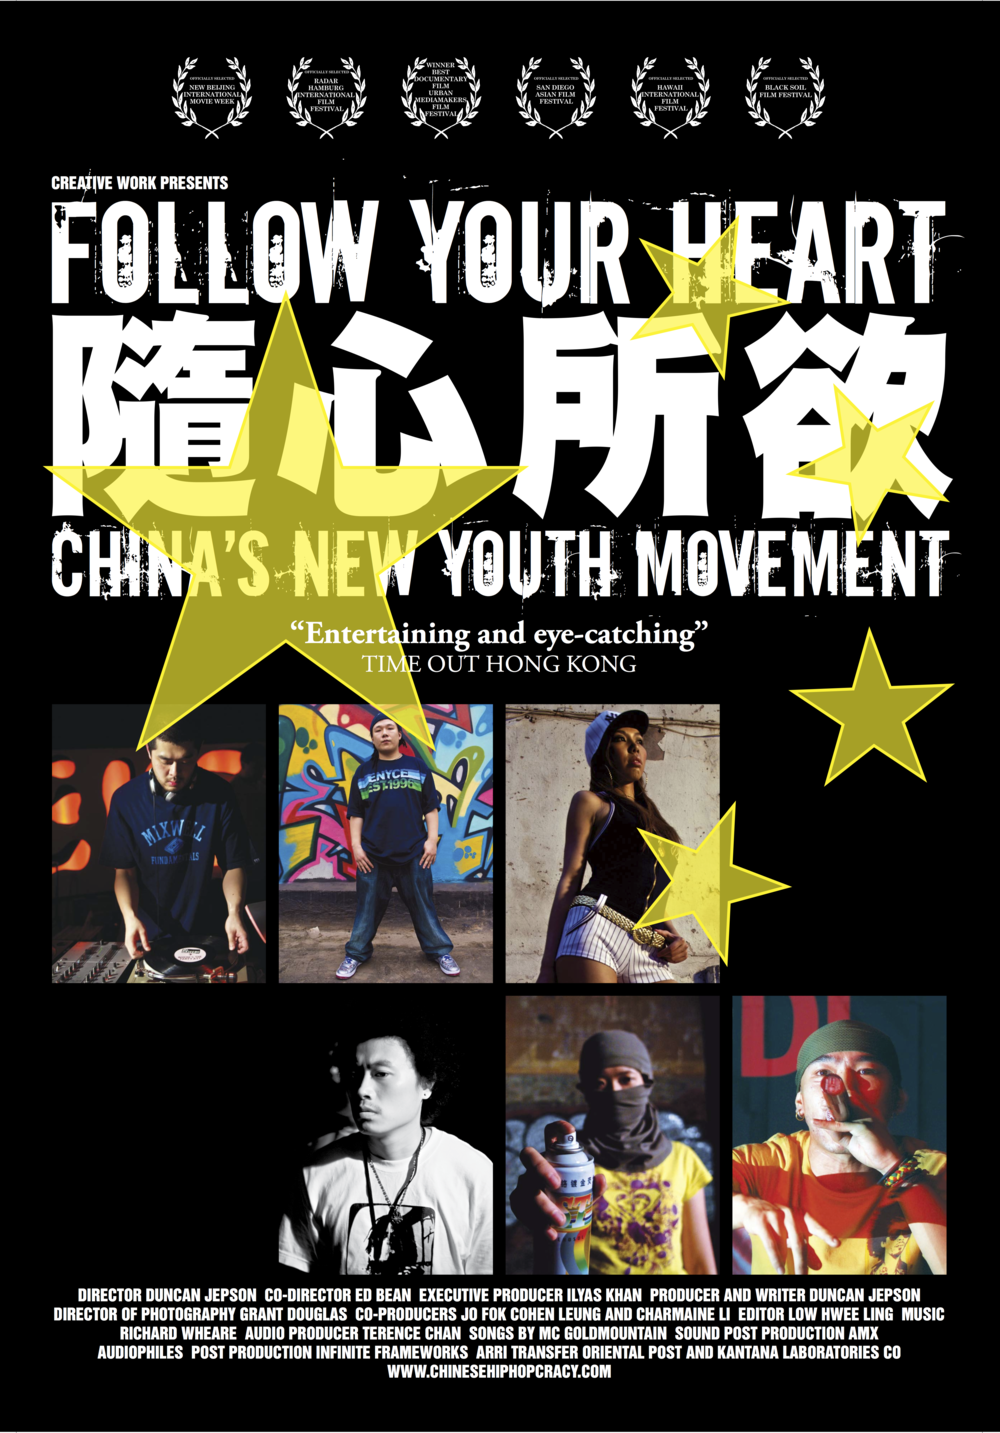 Follow Your Heart- China's New Youth Movement